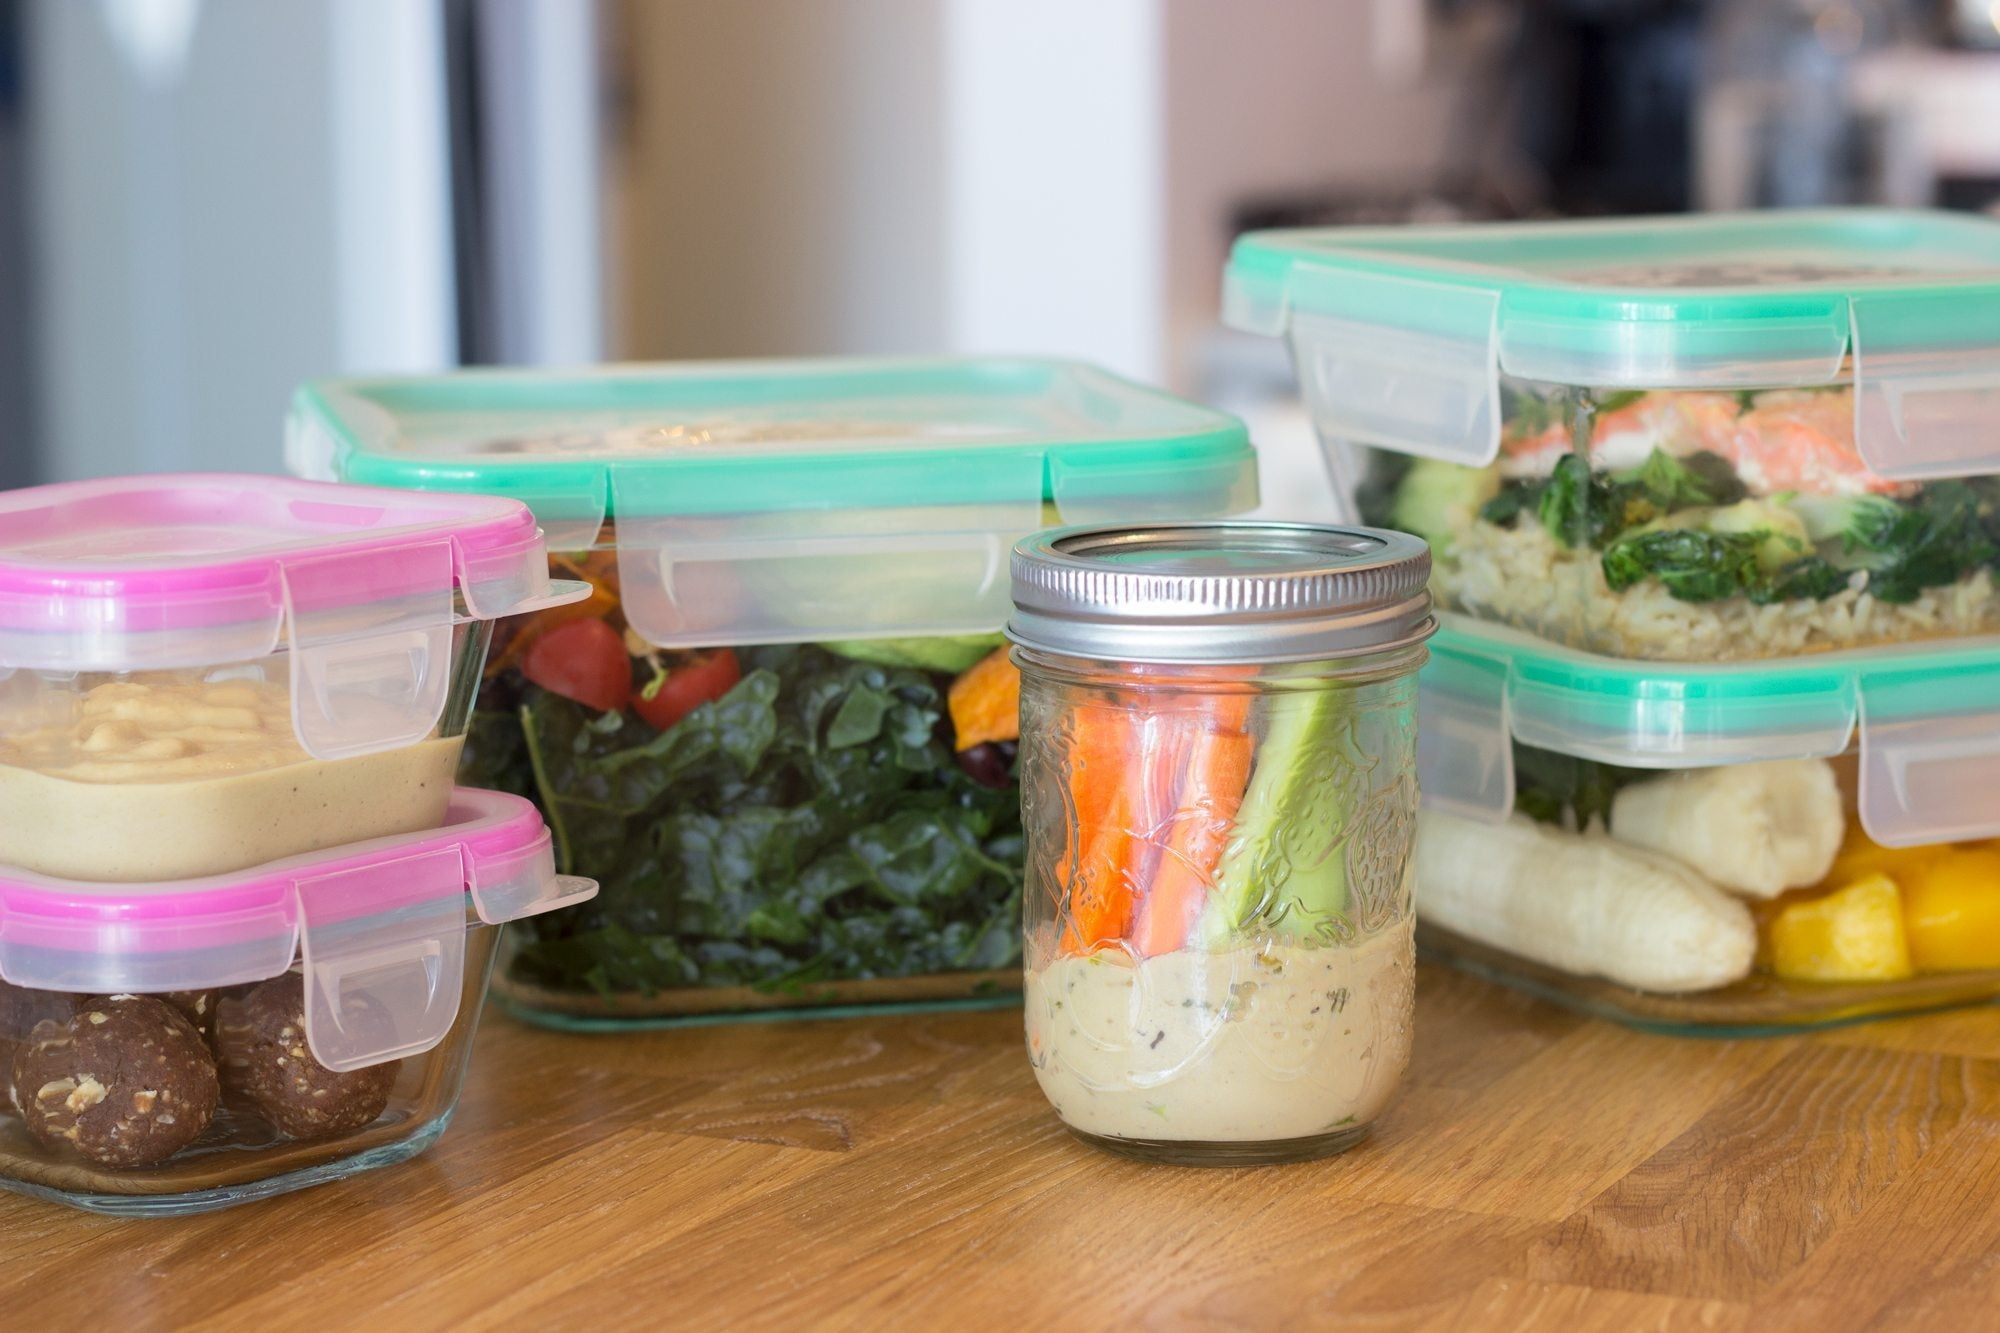 Don't forget to make snacks when meal planning